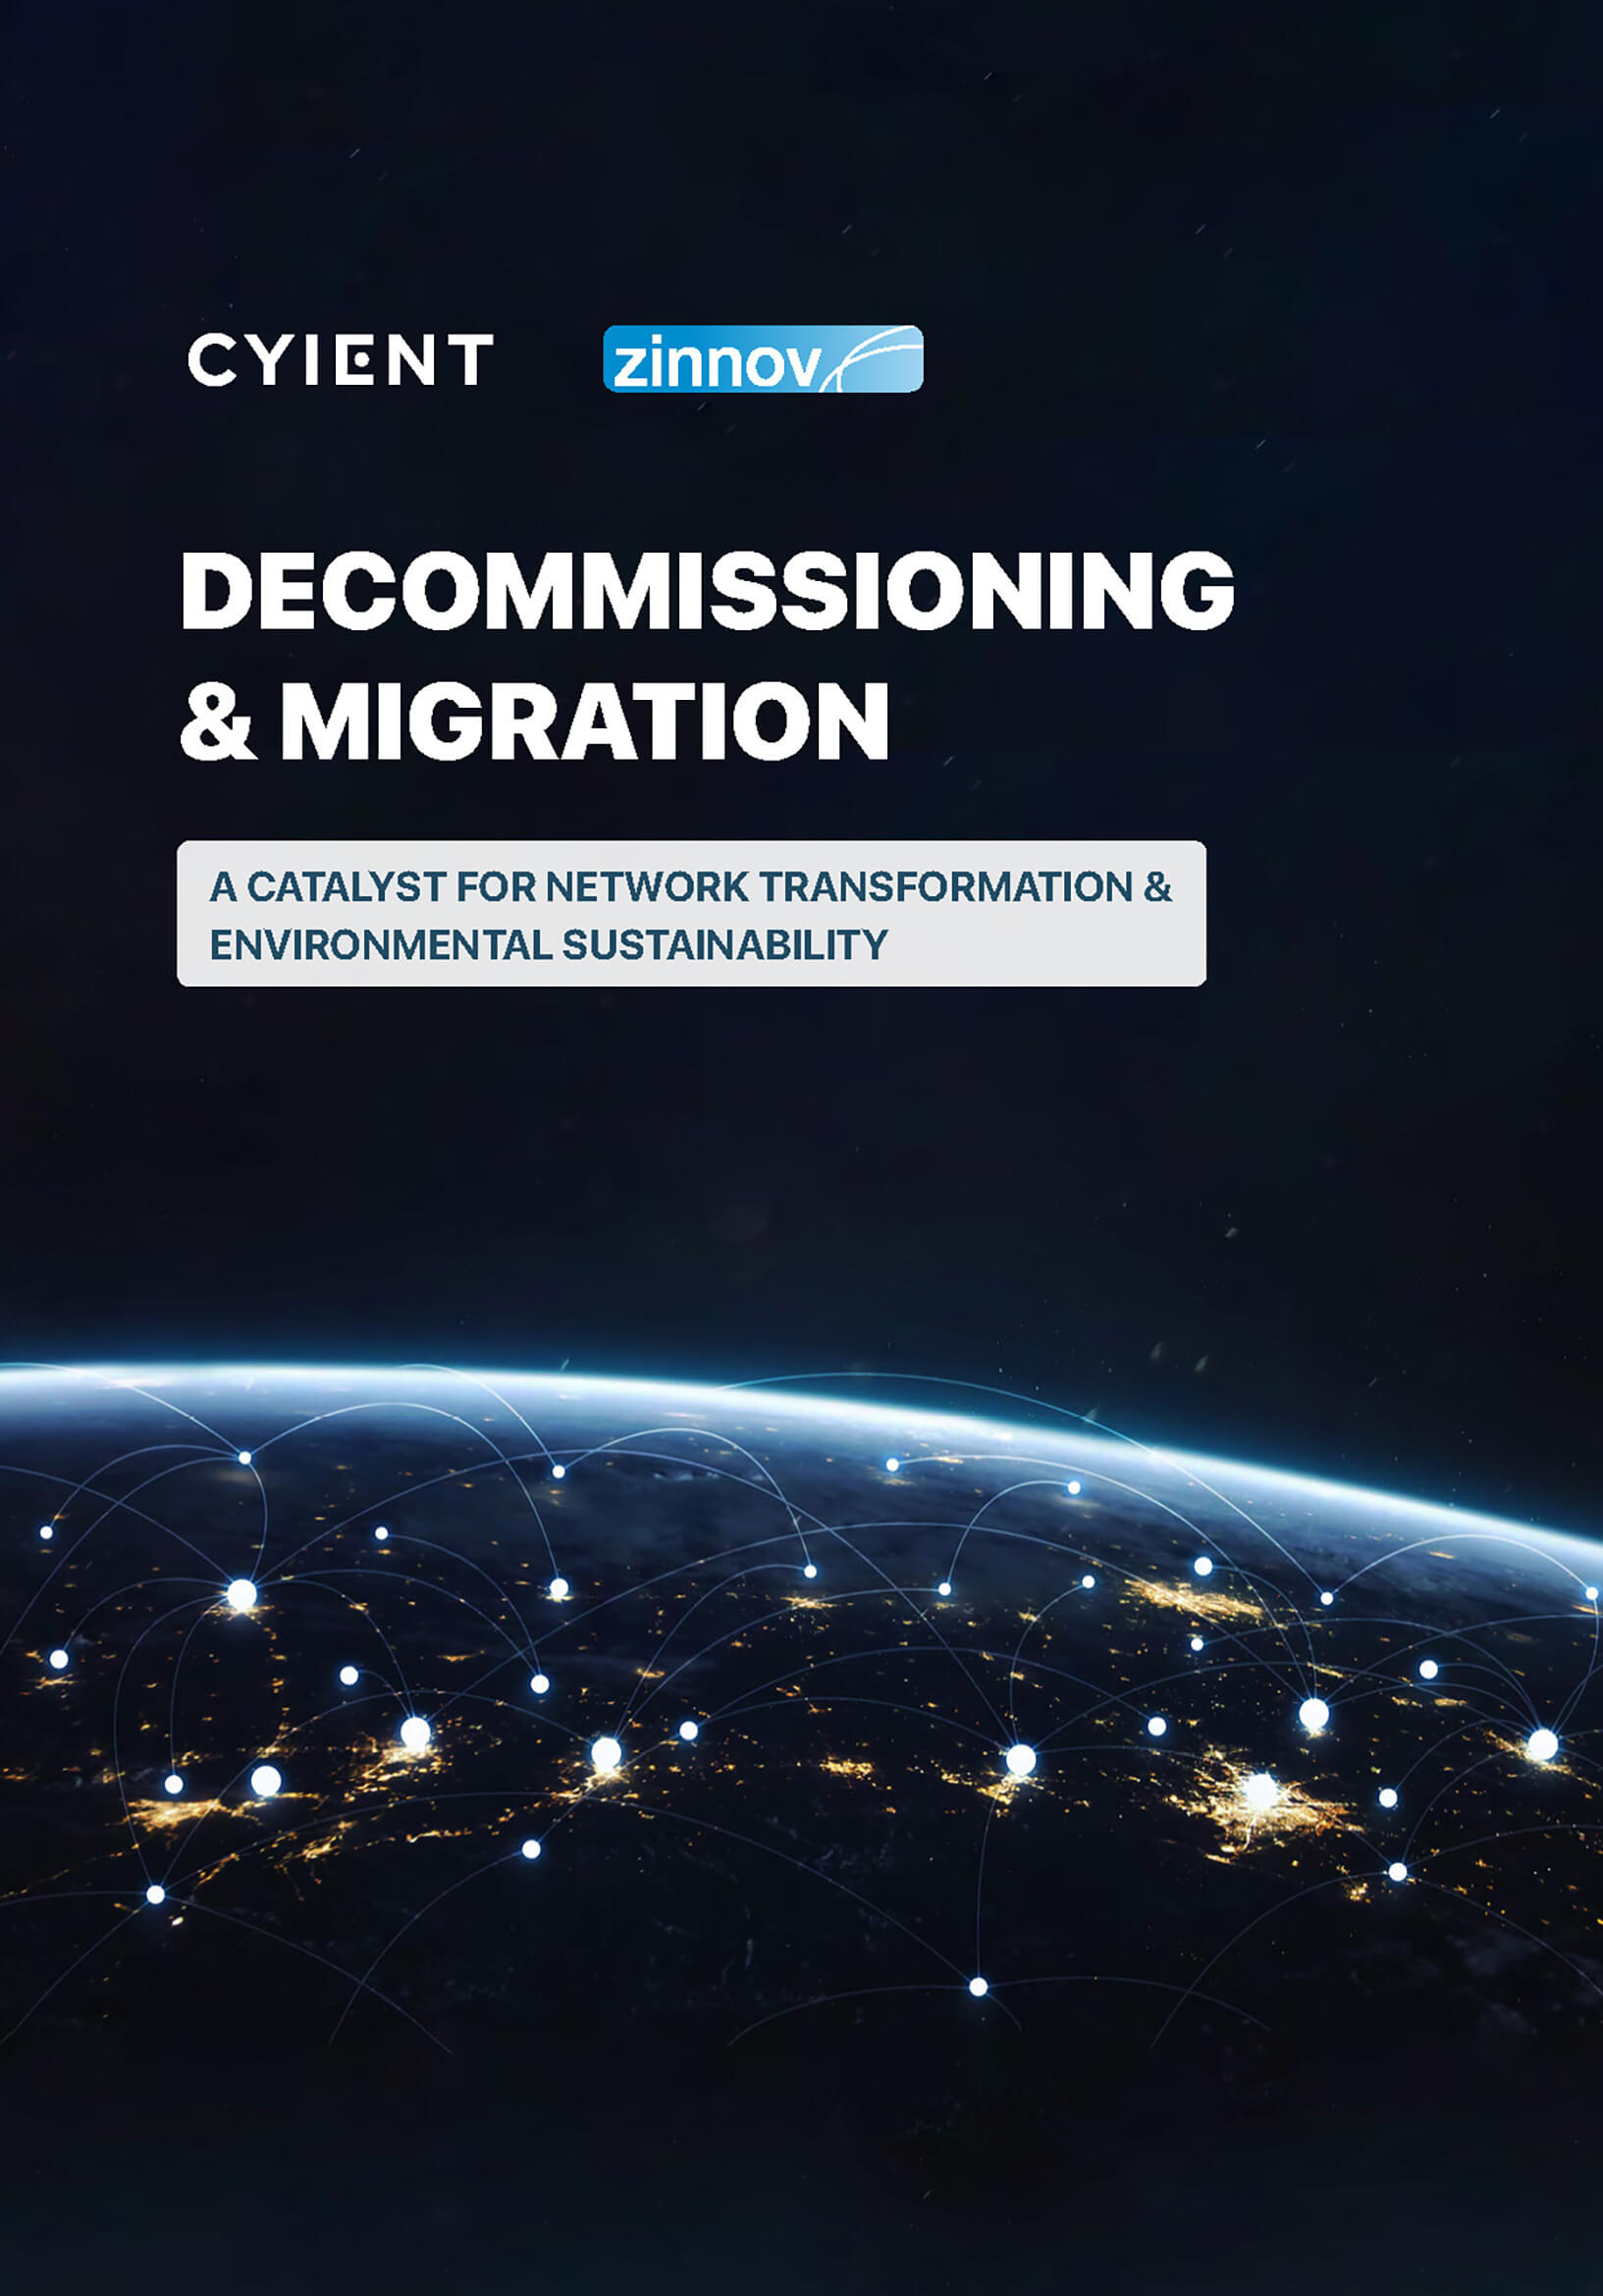 Decommissioning & Migration: A Catalyst For Network Transformation & Environmental Sustainability